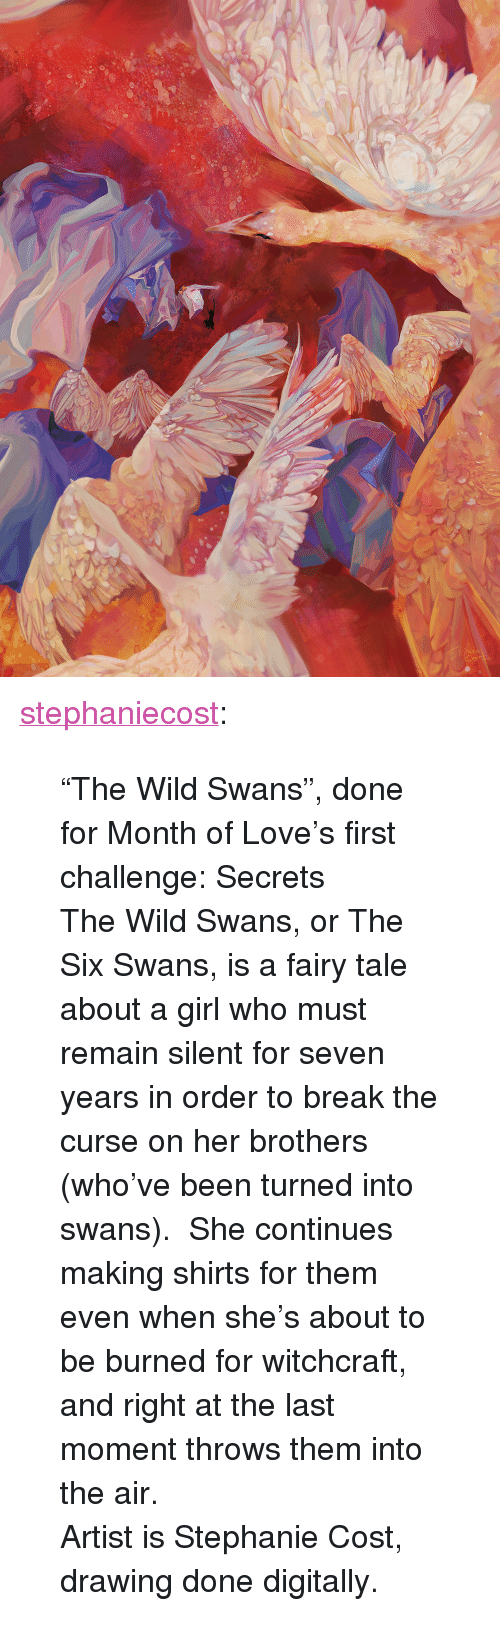 """fairy tale: <p><a href=""""http://stephaniecost.tumblr.com/post/156682231812/the-wild-swans-done-for-month-of-loves-first"""" class=""""tumblr_blog"""" target=""""_blank"""">stephaniecost</a>:</p><blockquote> <p>""""The Wild Swans"""", done for Month of Love's first challenge: Secrets<br/></p> <p>The Wild Swans, or The Six Swans, is a fairy tale about a girl who must remain silent for seven years in order to break the curse on her brothers (who've been turned into swans). She continues making shirts for them even when she's about to be burned for witchcraft, and right at the last moment throws them into the air.</p> <p>Artist is Stephanie Cost, drawing done digitally.</p> </blockquote>"""